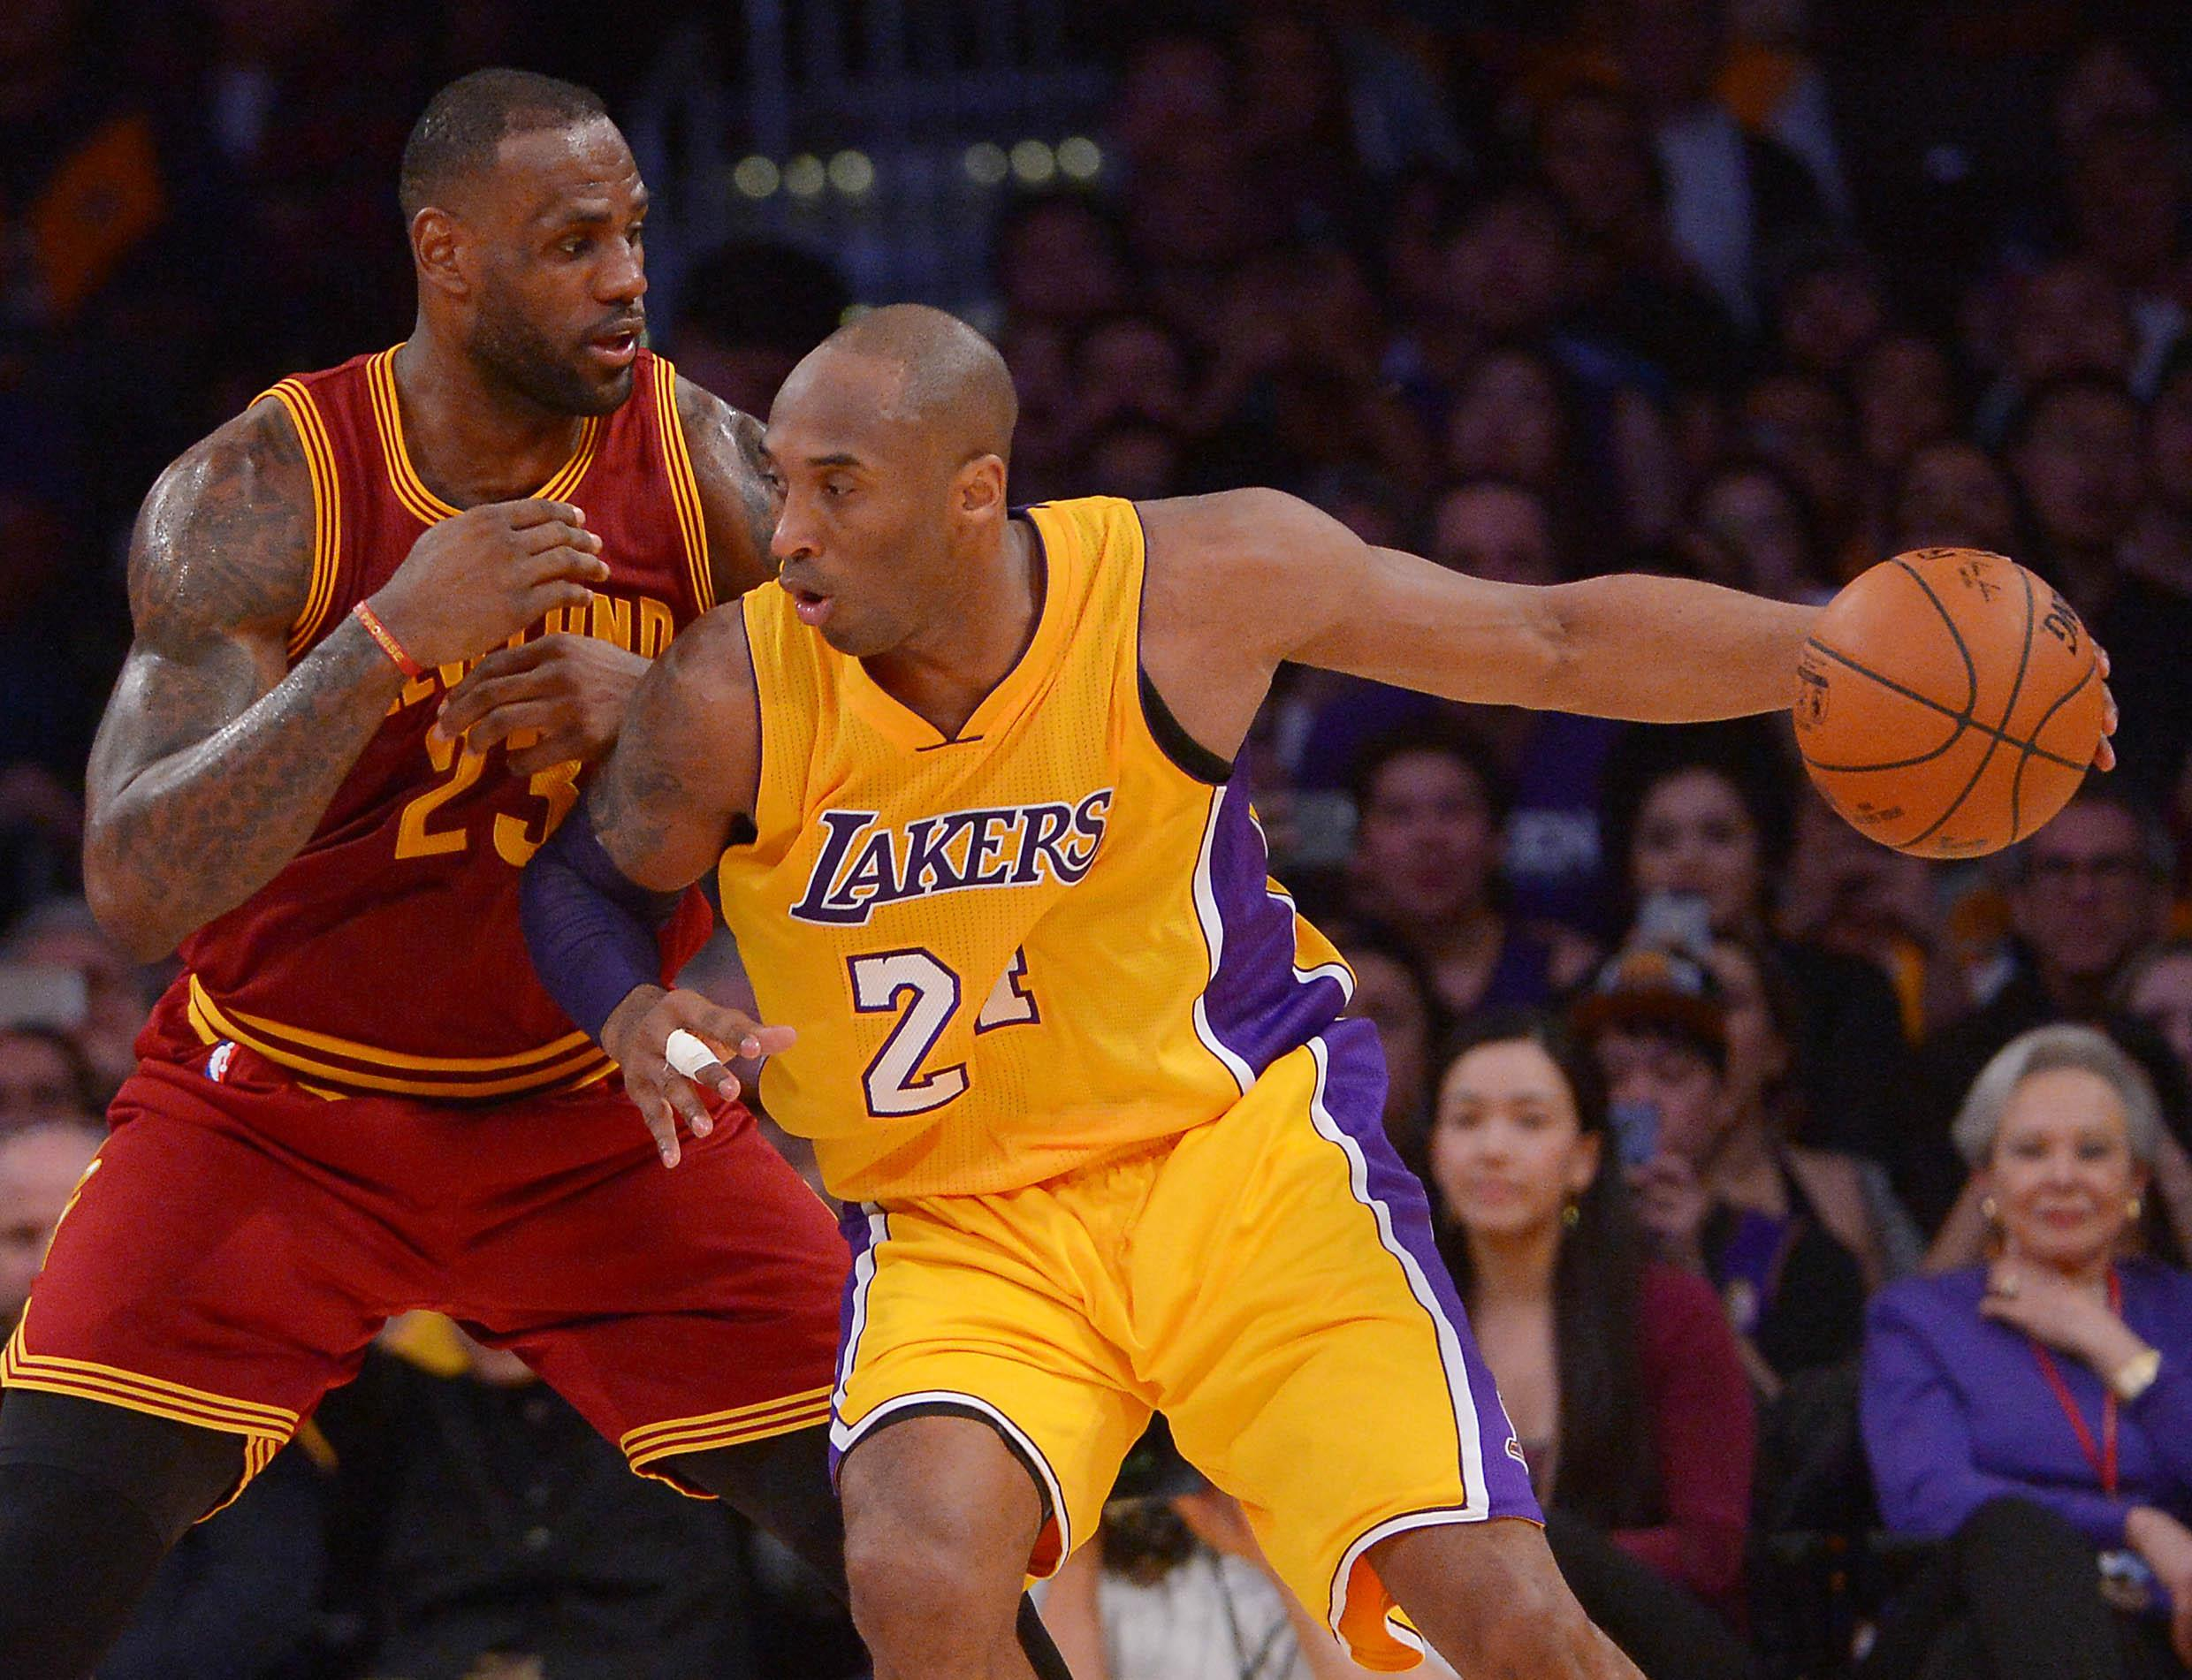 Mar 10, 2016; Los Angeles, CA, USA; Cleveland Cavaliers forward LeBron James (23) guards Los Angeles Lakers forward Kobe Bryant (24) on the court in the first half of the game at Staples Center. Mandatory Credit: Jayne Kamin-Oncea-USA TODAY Sports